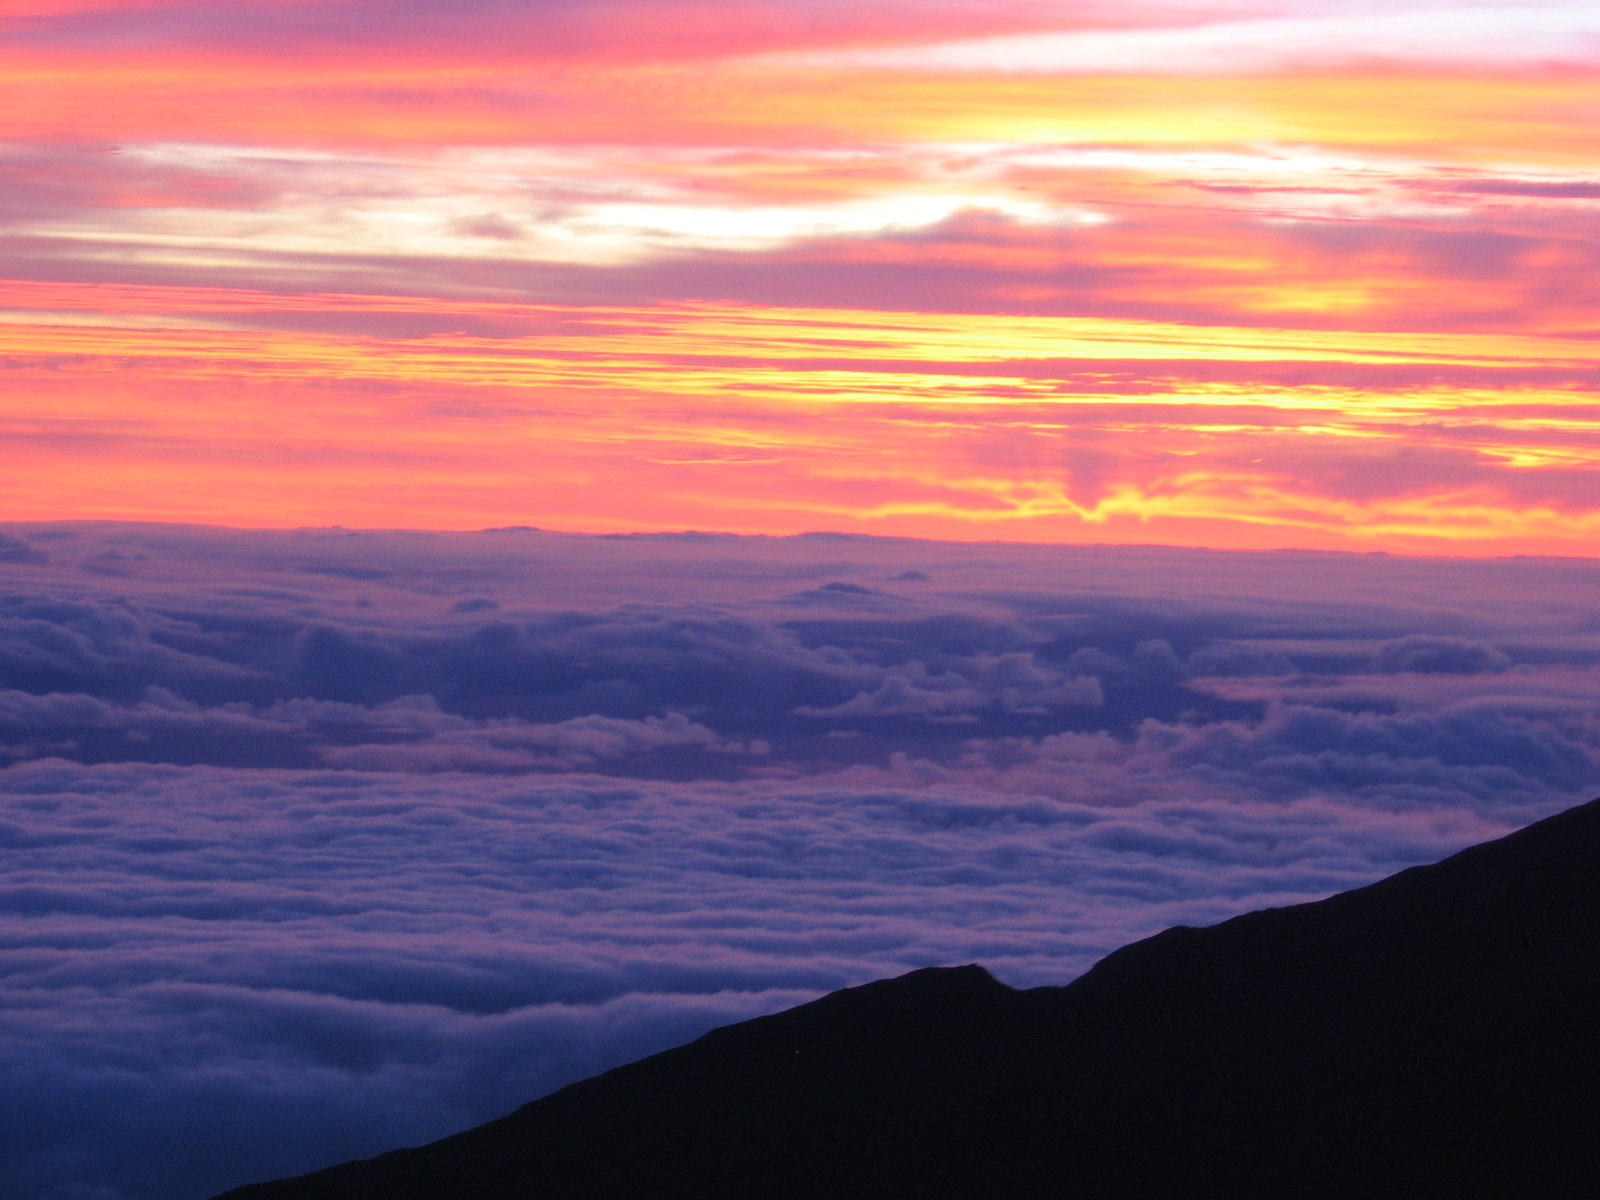 Sunrise from the summit of Haleakala